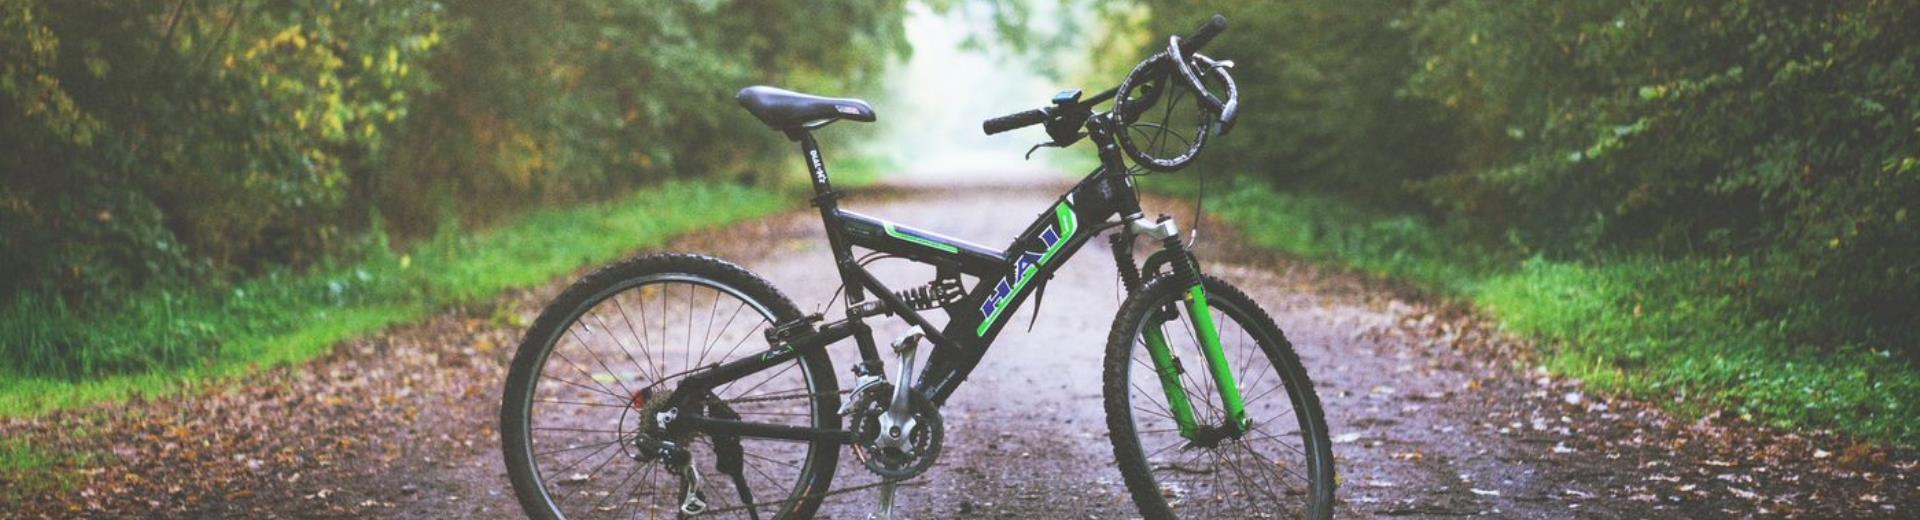 After a hard day at work, take a break: with the mountain bikes of BW Air Hotel Linate, you can immerse yourself in the green area of Idroscalo, in contact with nature!